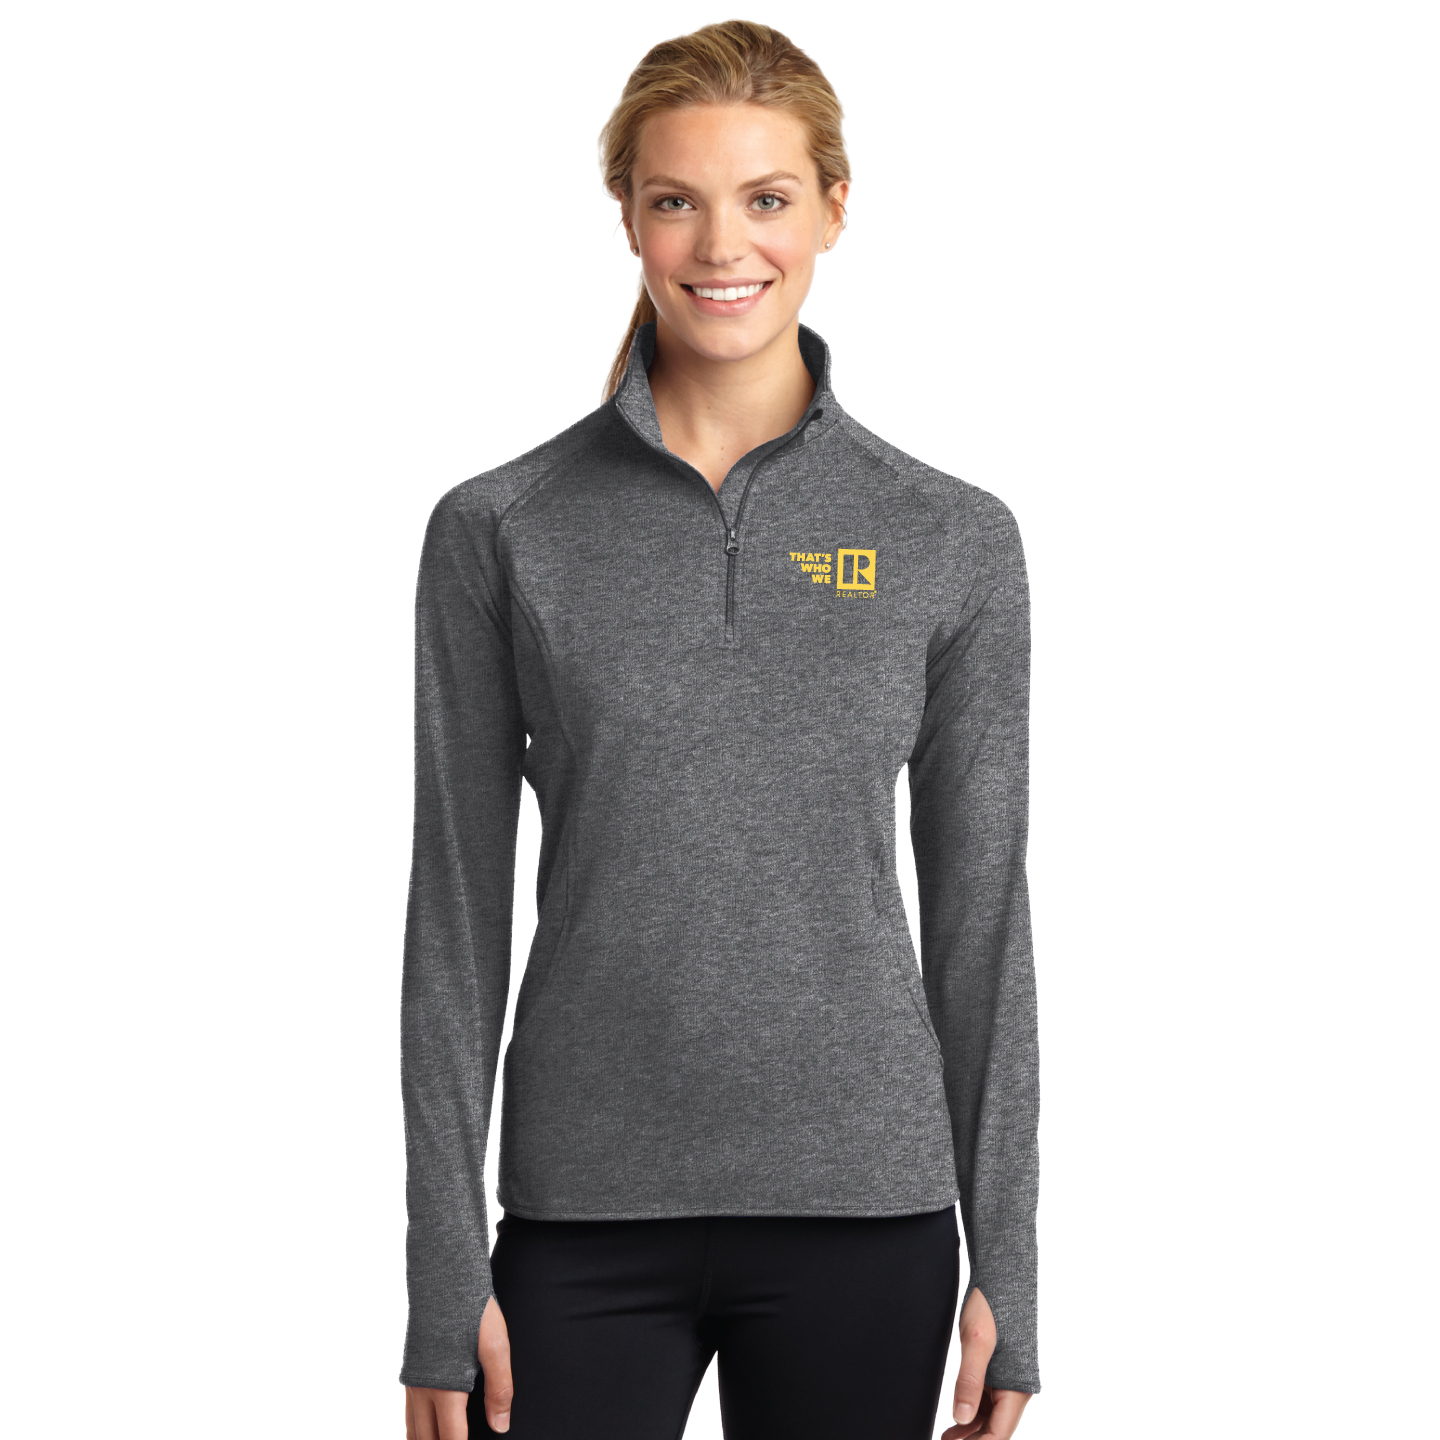 """That's Who We R"" Ladies Sport Stretch 1/2 Zip Pullover TWWR,Thats,Whos,Are,Pullover,Fleece,Long Sleeve"